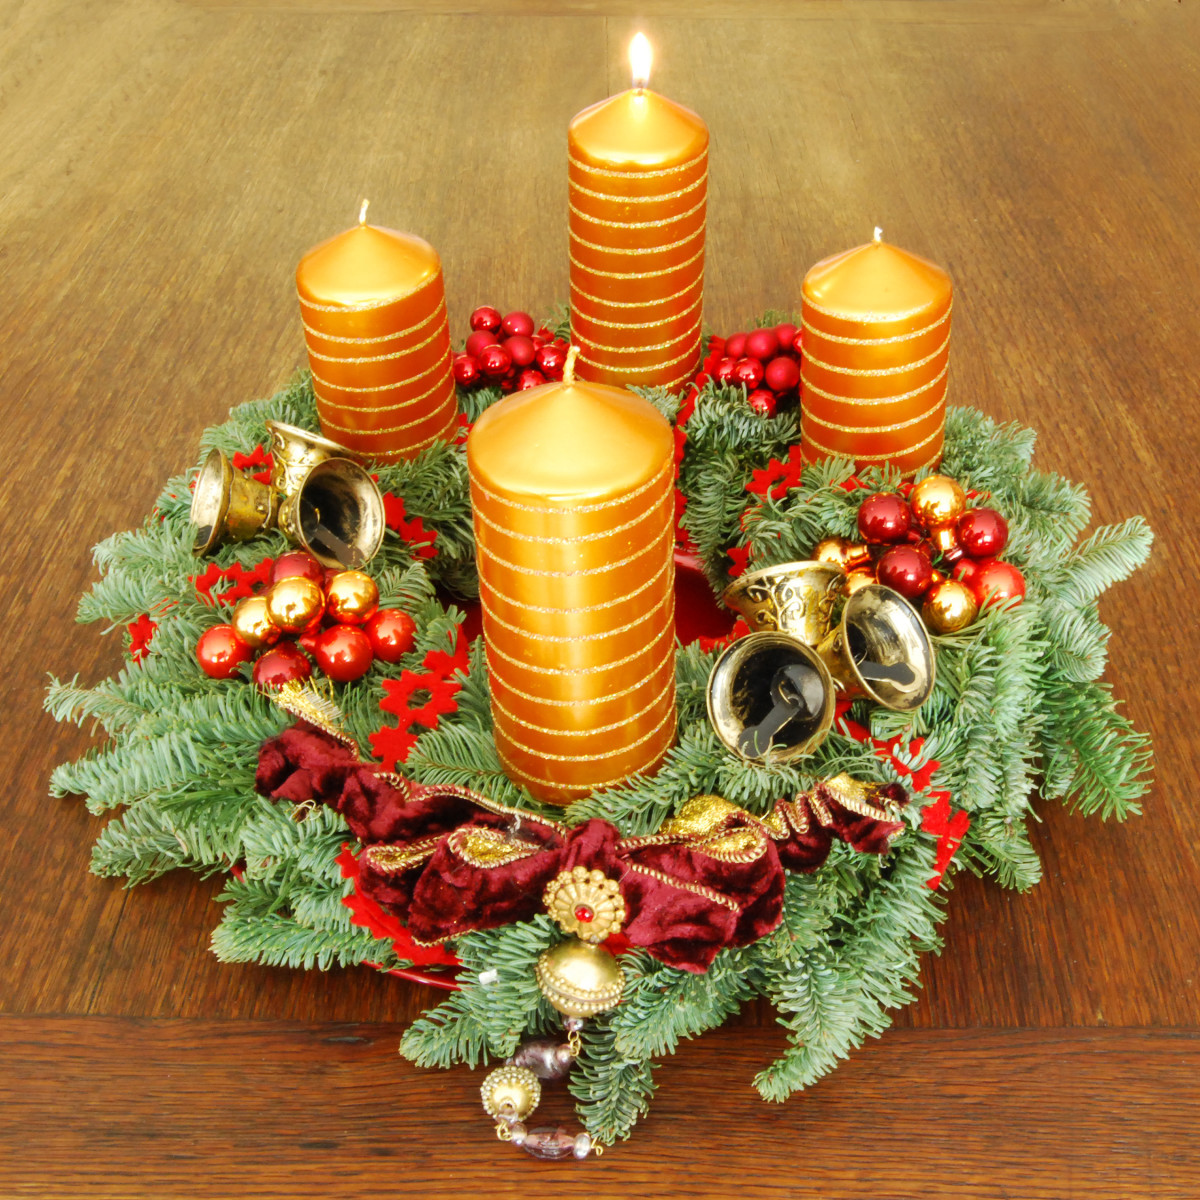 The Meaning of Advent: Celebrate with Calendar, Candles, & Wreath